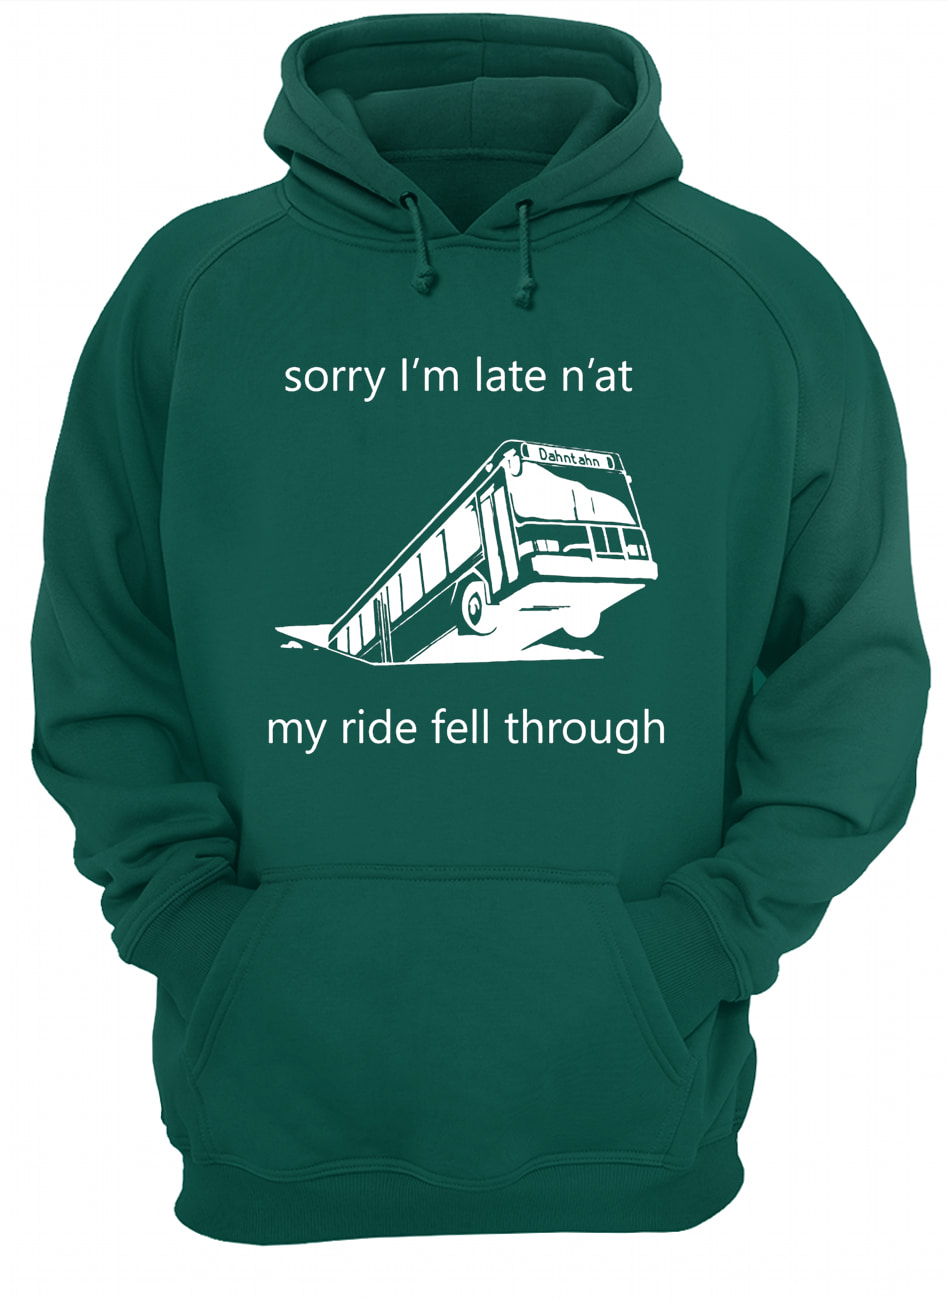 Sorry i'm late n'at my ride fell through pittsburgh bus in sinkhole hoodie